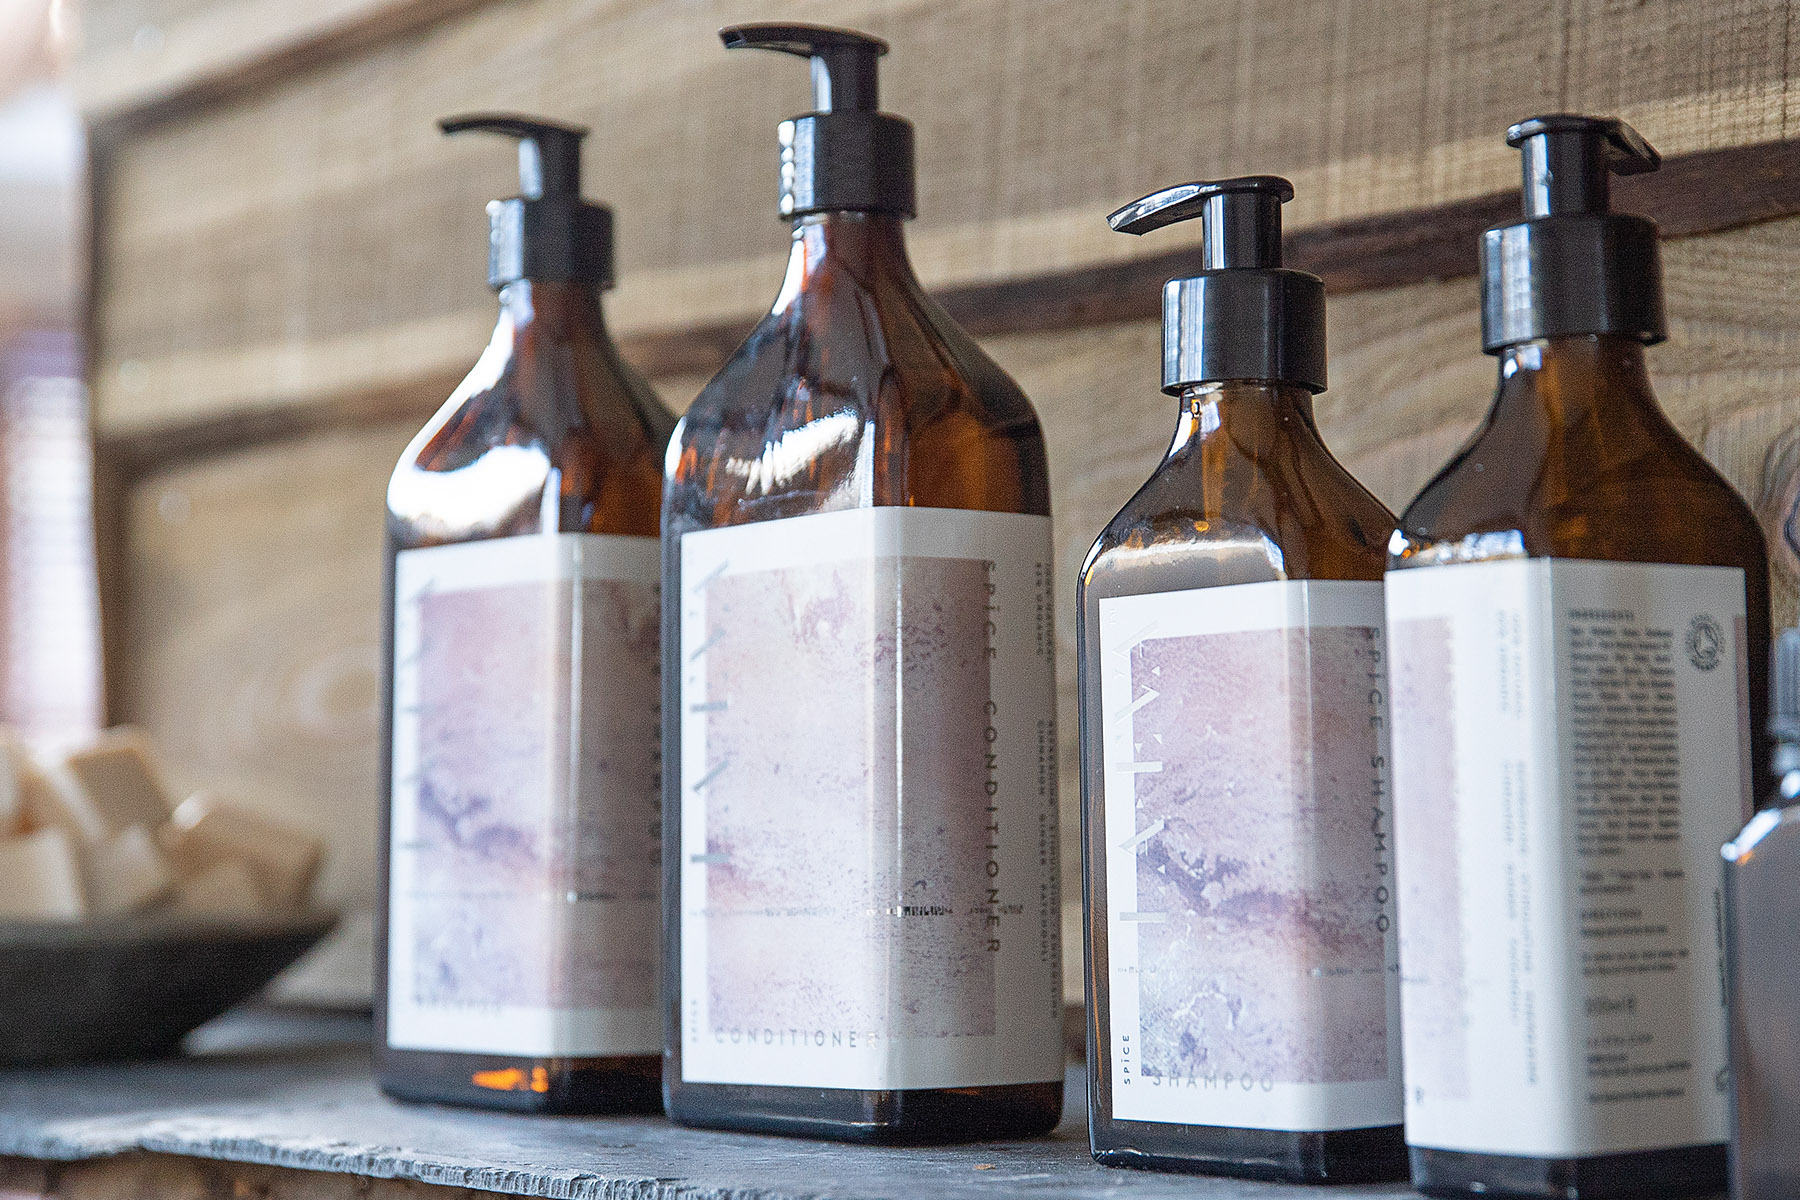 Row of La Eva soap bottles, Spice shampoo